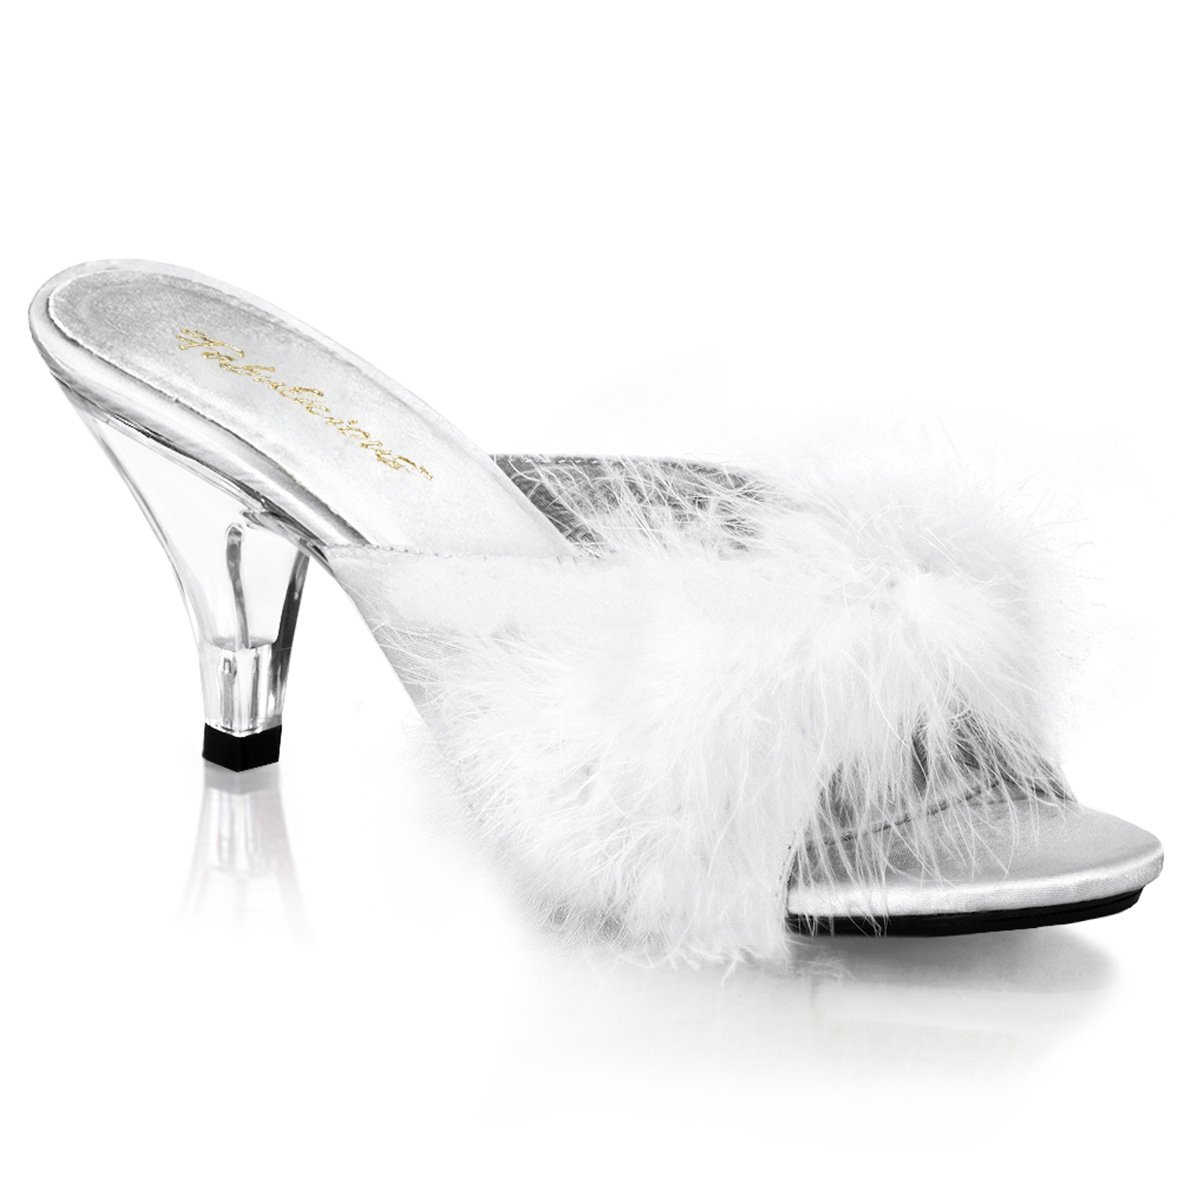 Pleaser Fabulicious BELLE-301F Women Sandal B00HV9WCL8 14 B(M) US|White Satin-fur/Clear